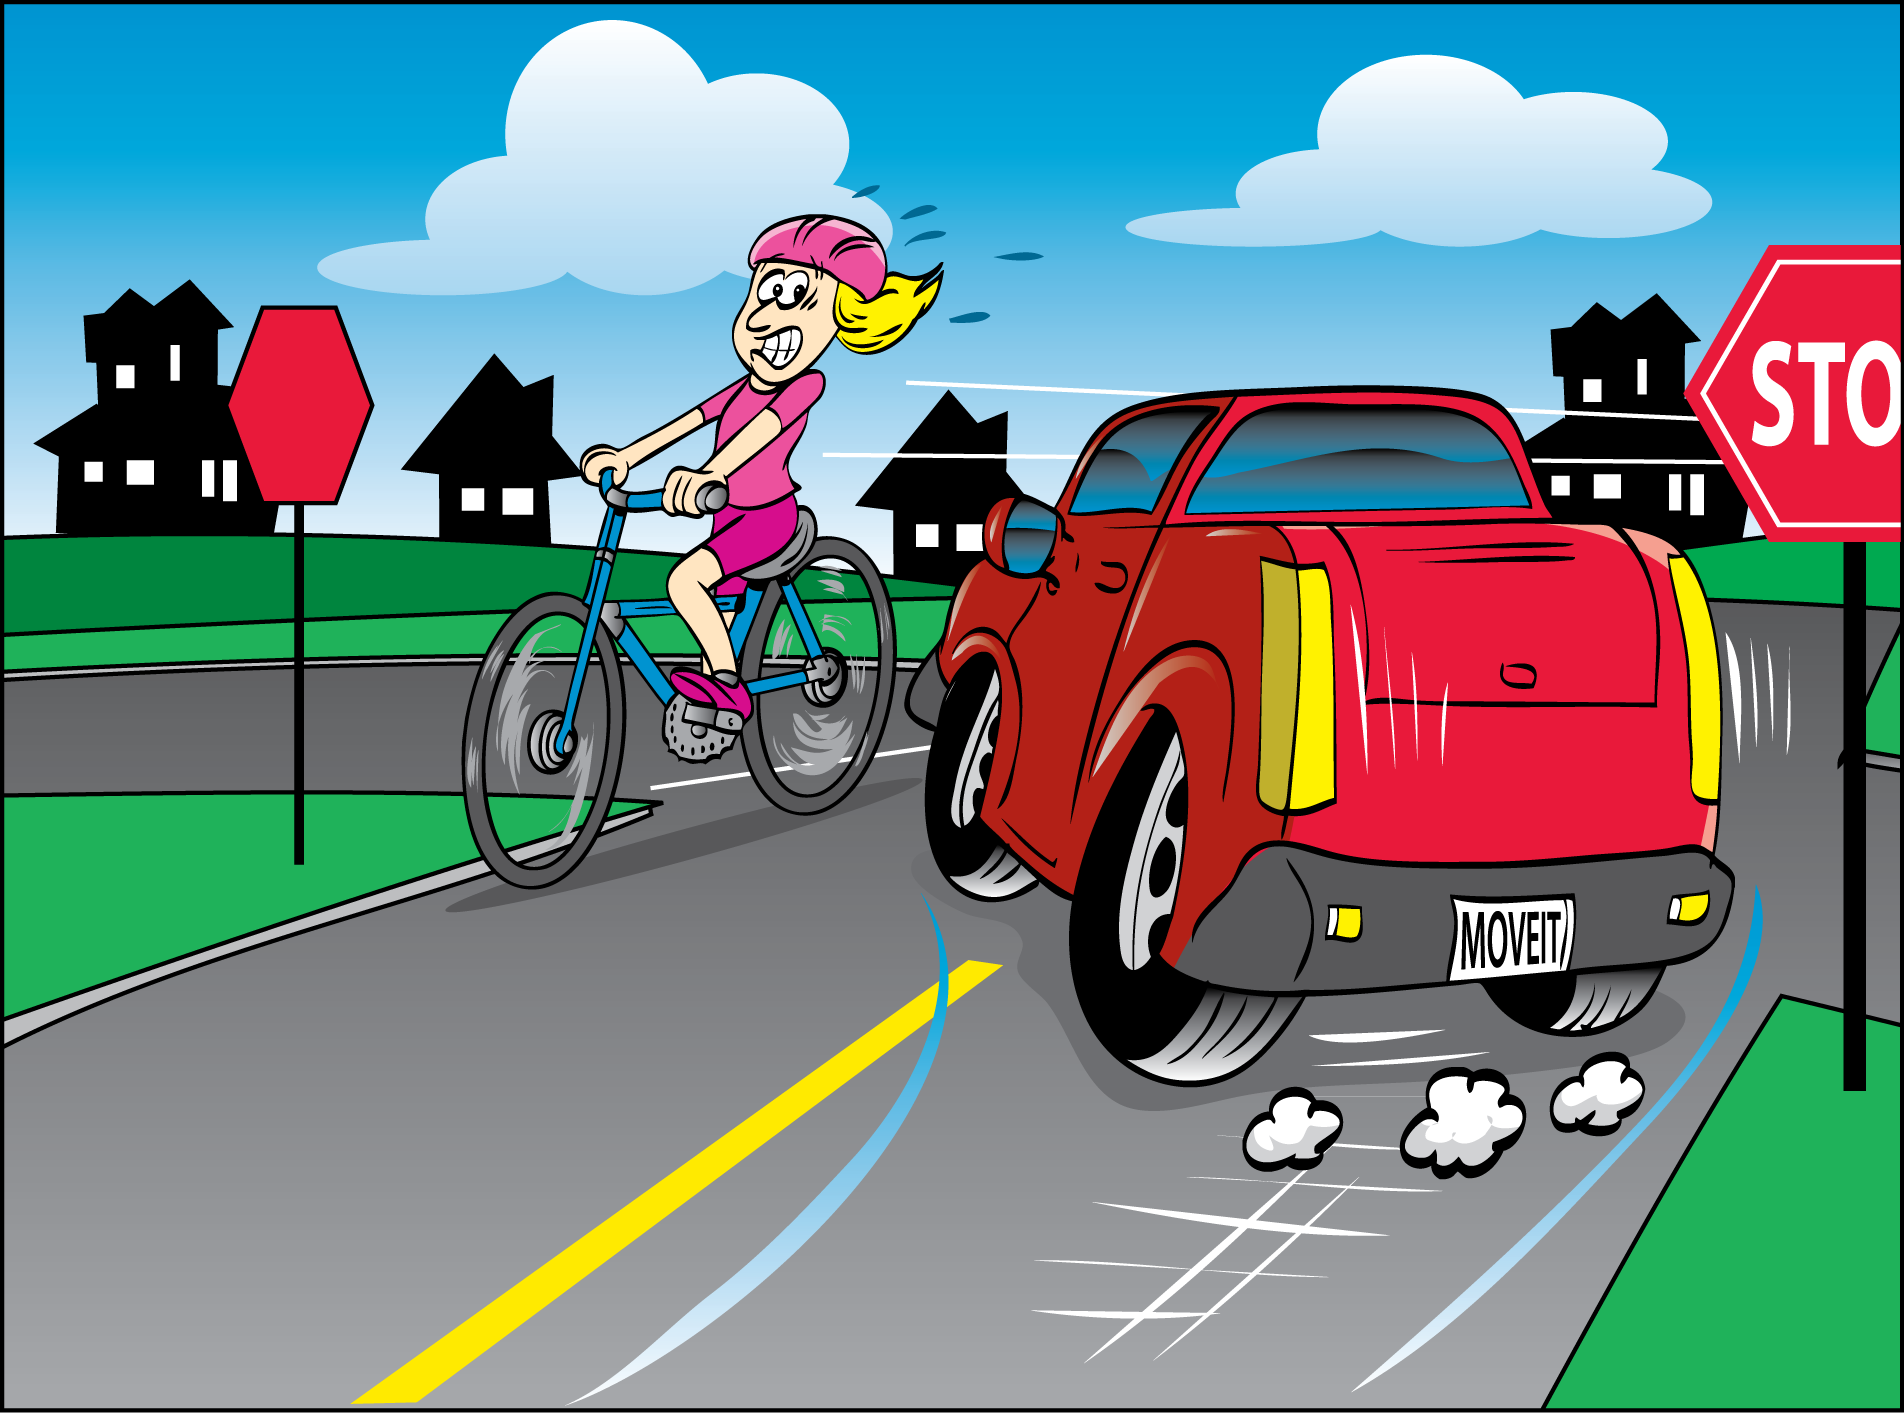 Bicycle crashing into car clipart.